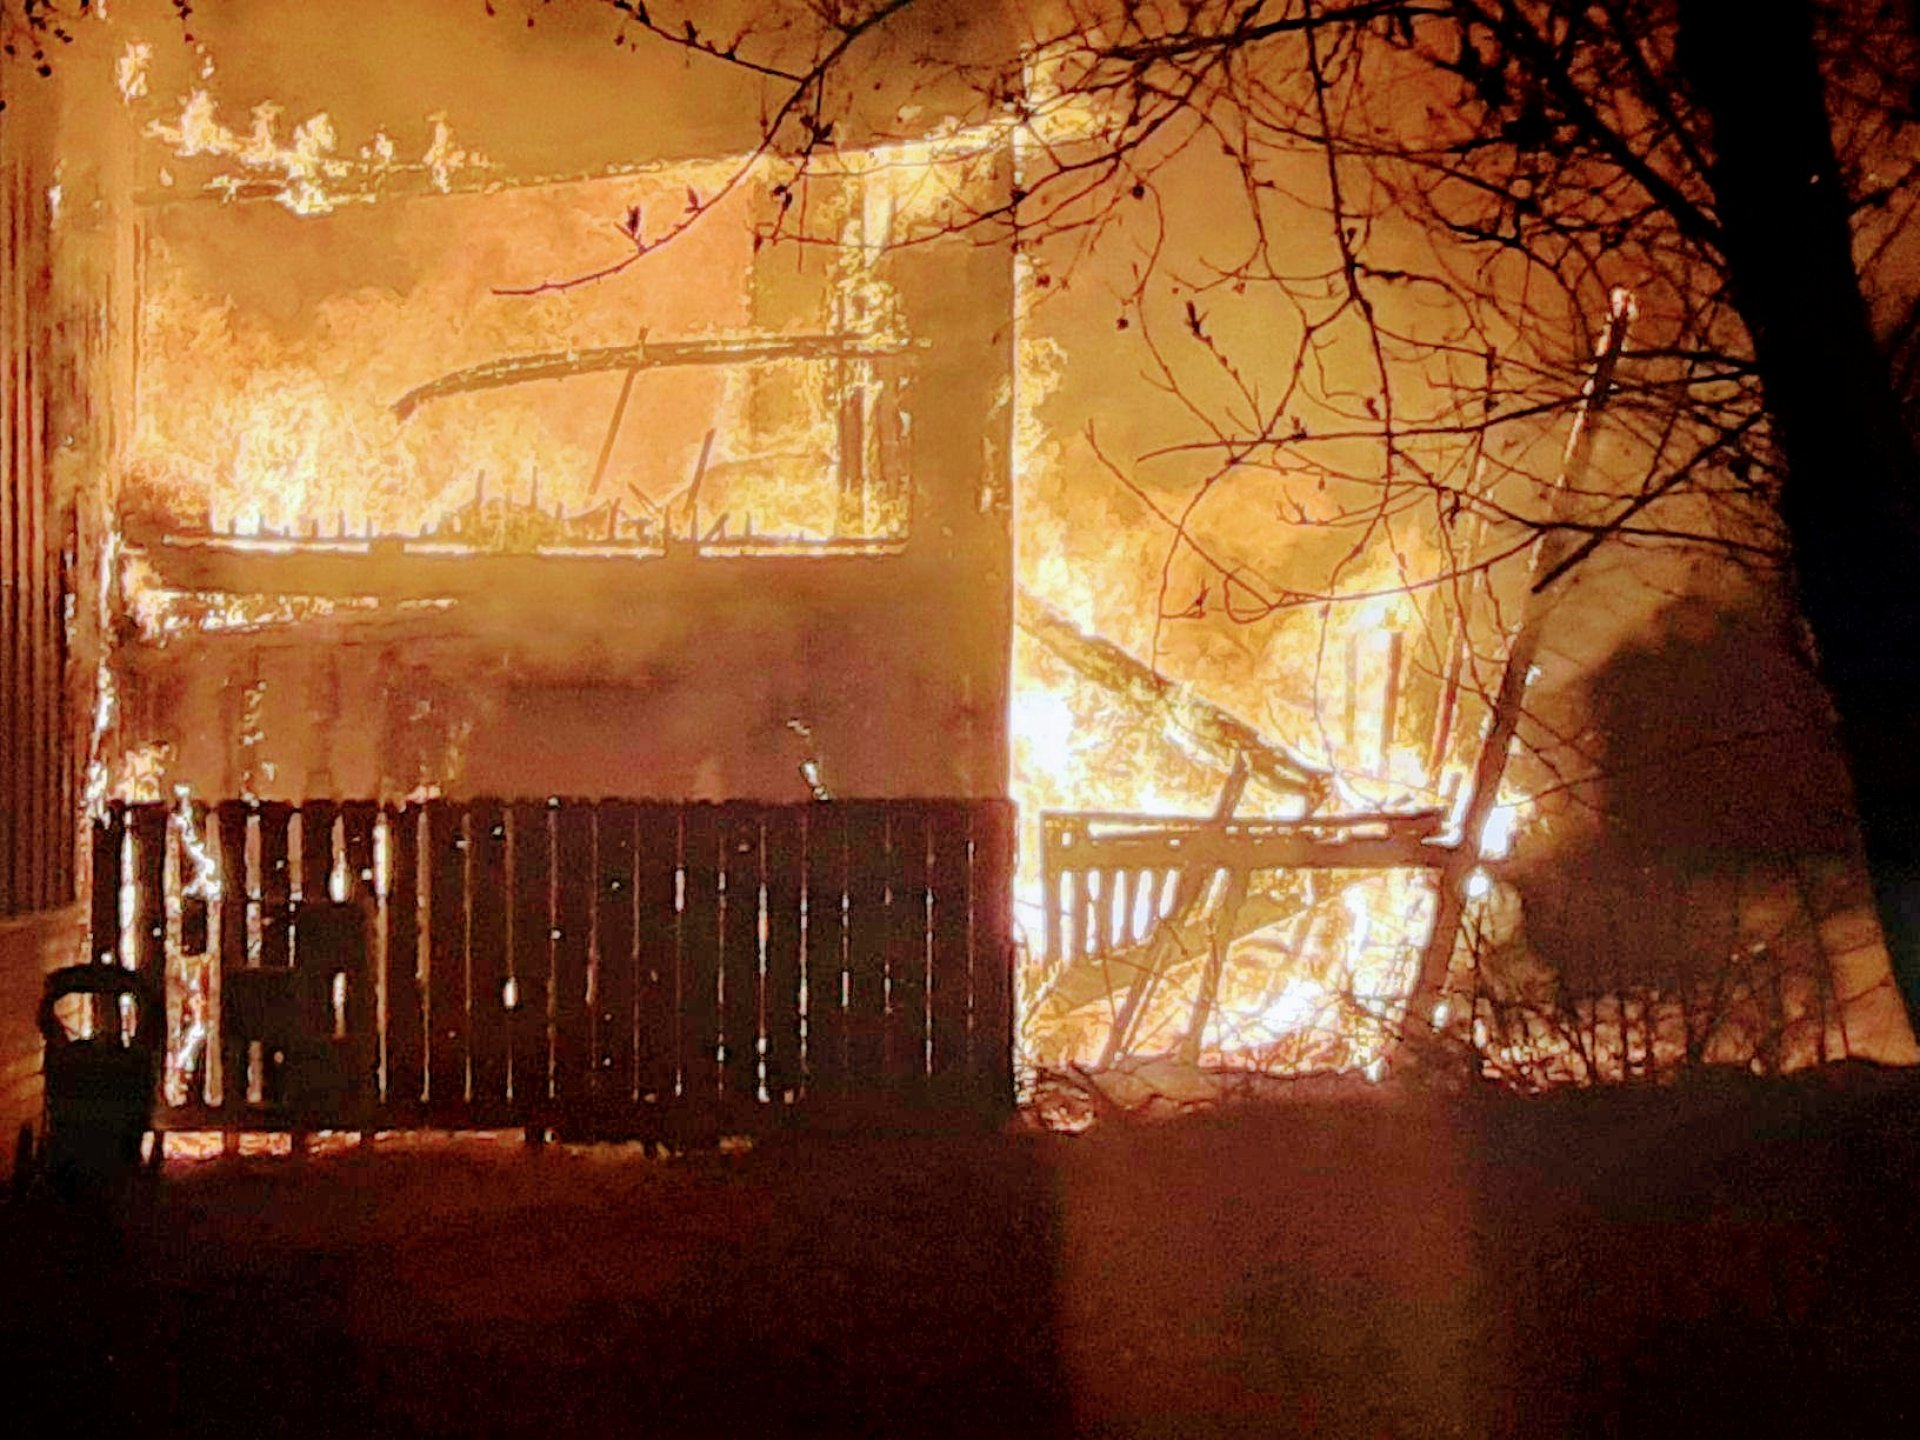 A fire burns at the Meadowbrook Apartments in Arcata, CA on Sunday Feb. 2. | Photo by Adam Loomis